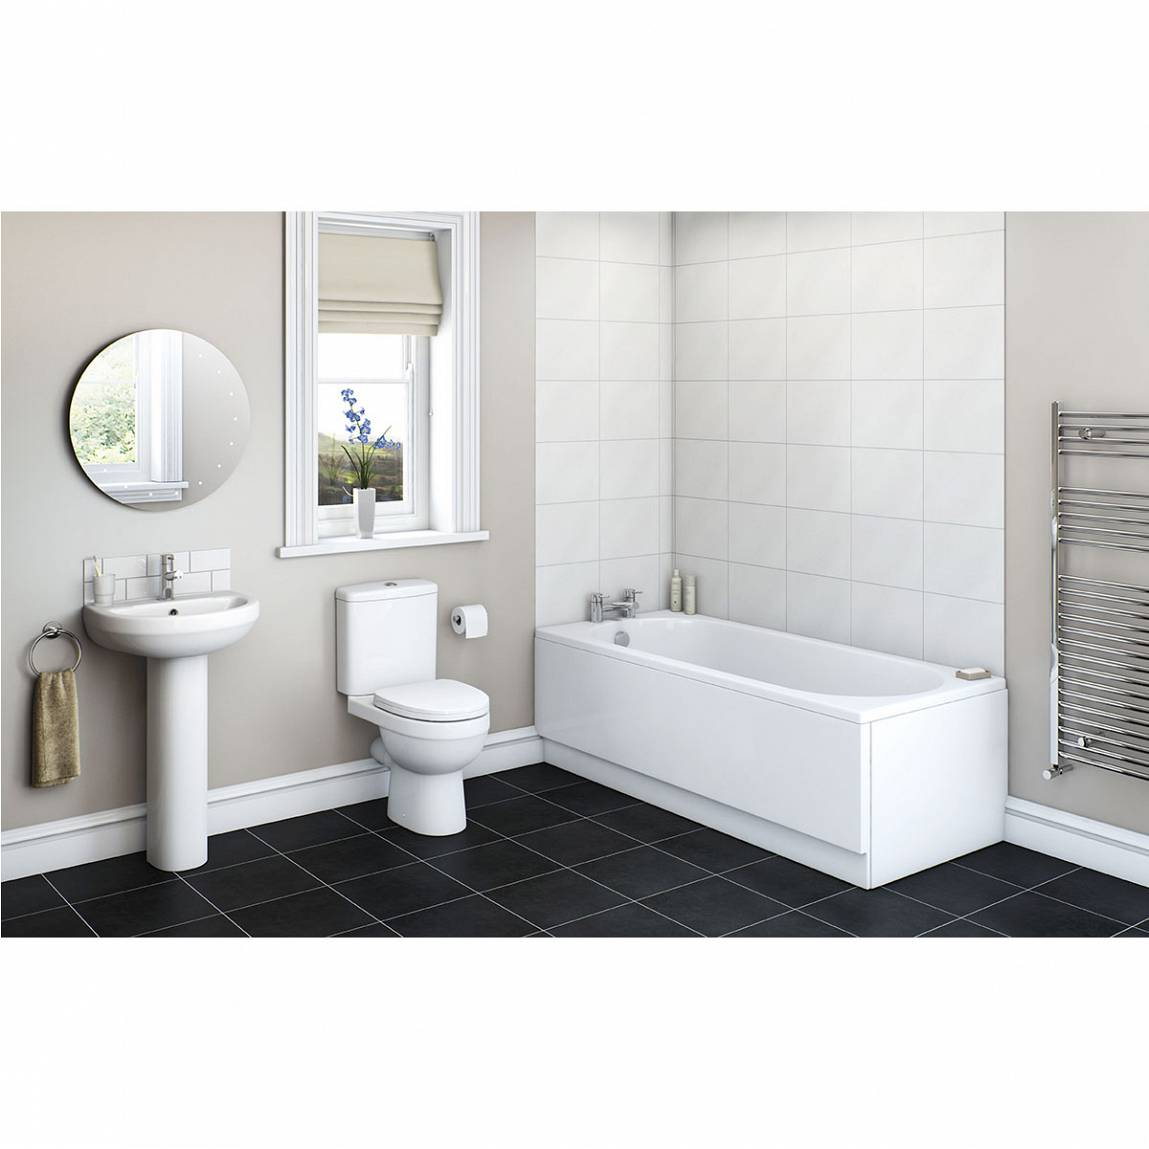 Image of Energy Bathroom Set with Richmond 1700 x 750 Bath Suite